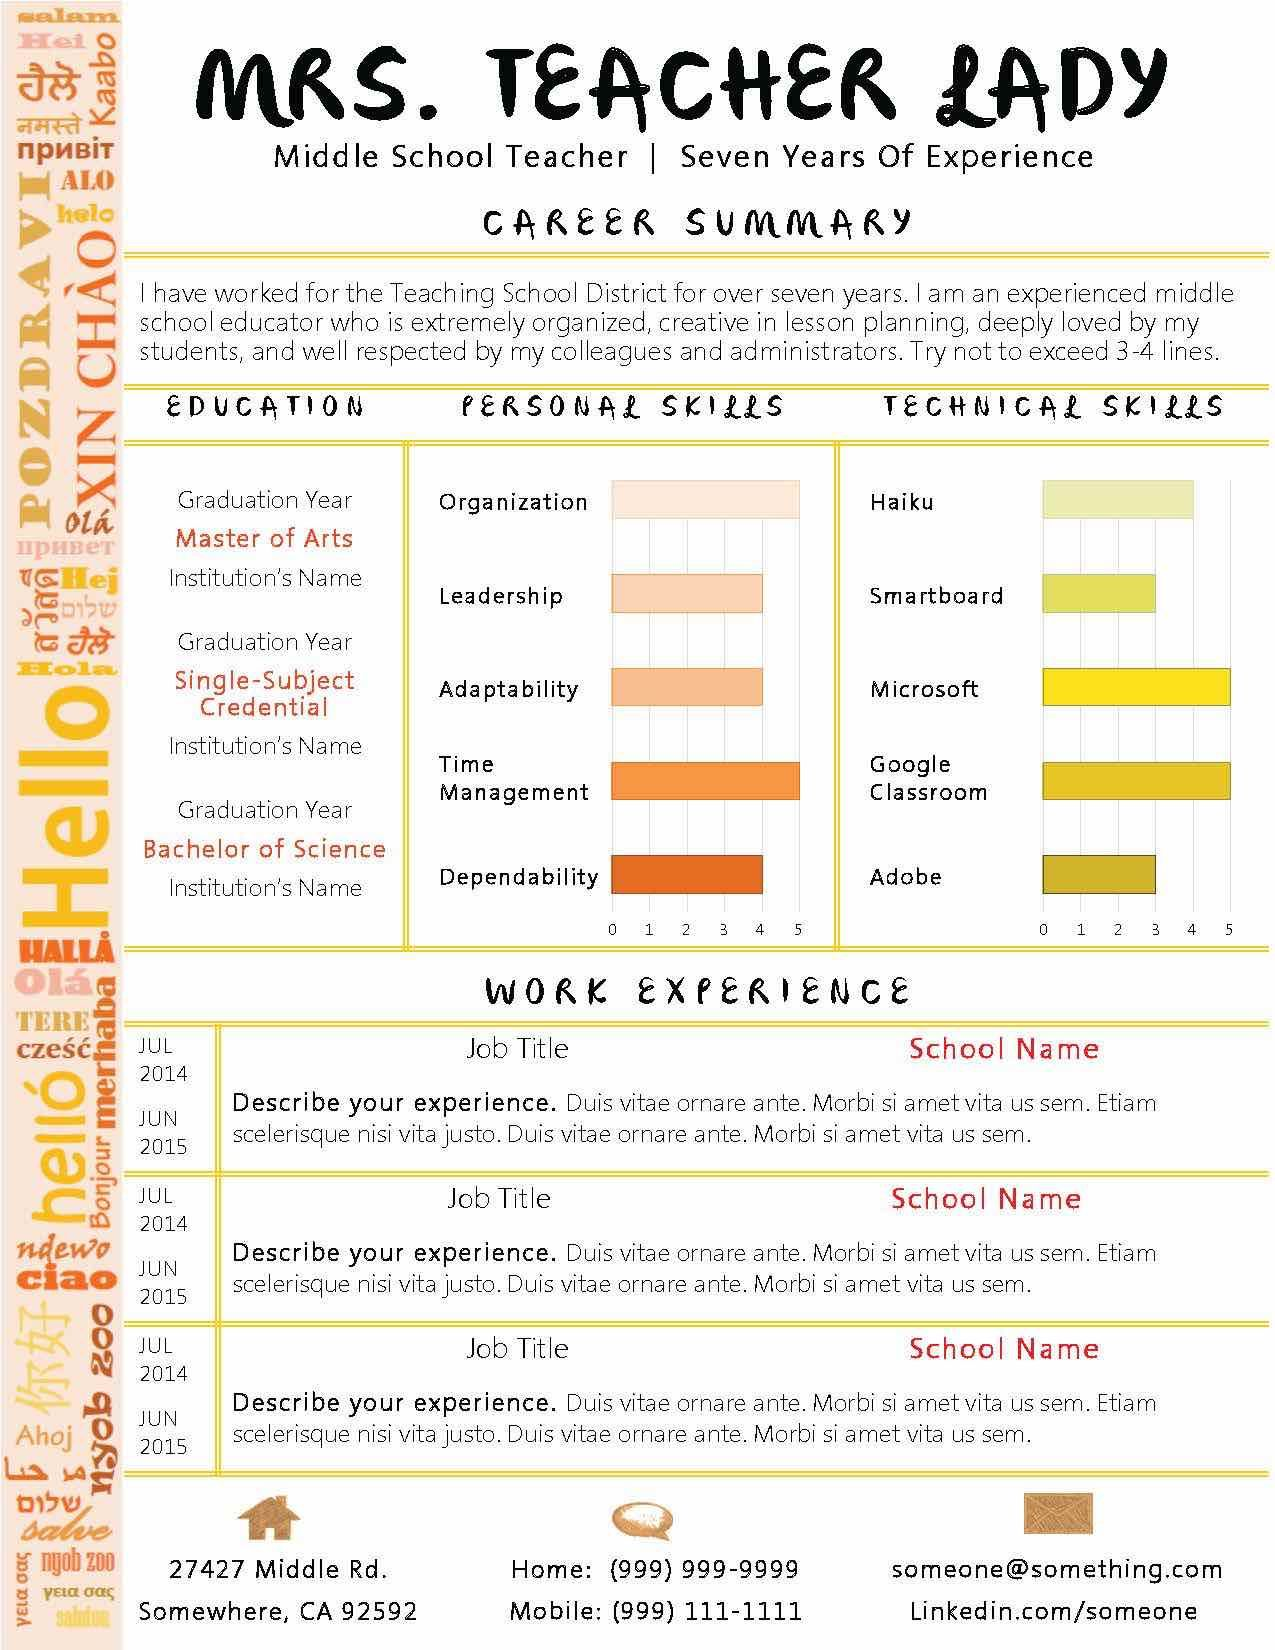 Autumn Colors Teacher Resume. Make your cover letter and resume pop ...